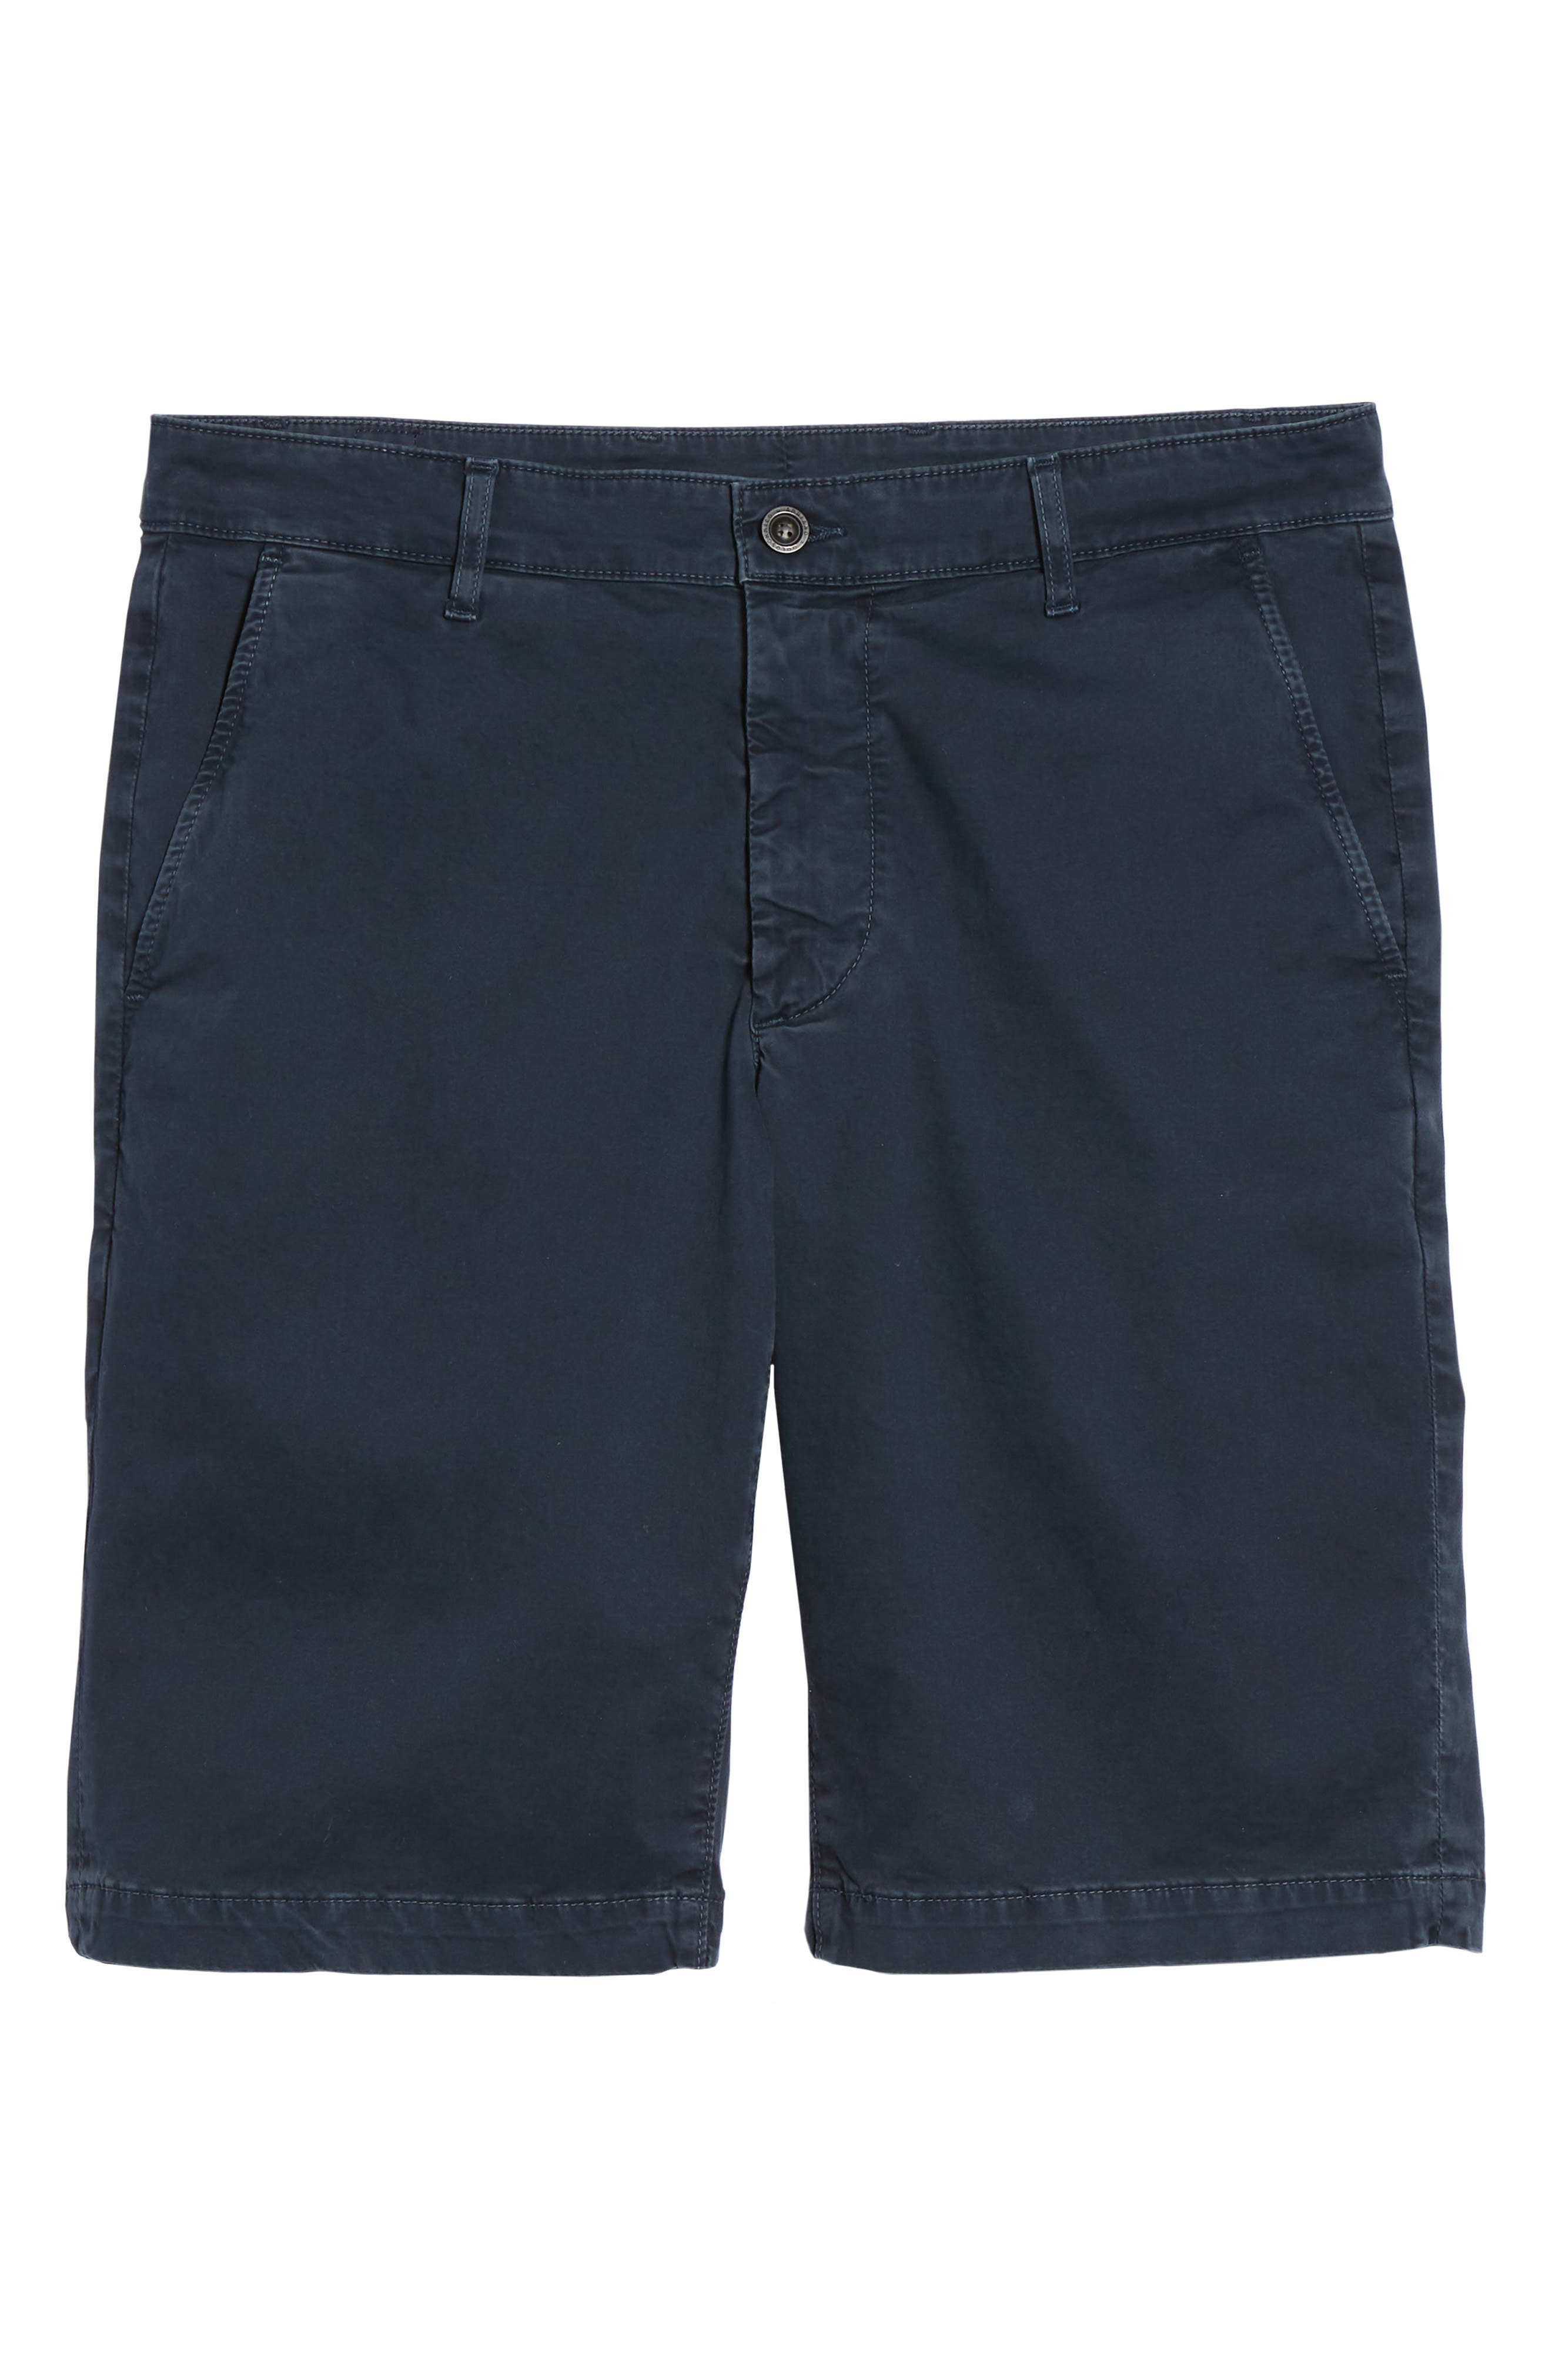 'Griffin' Chino Shorts,                             Alternate thumbnail 191, color,